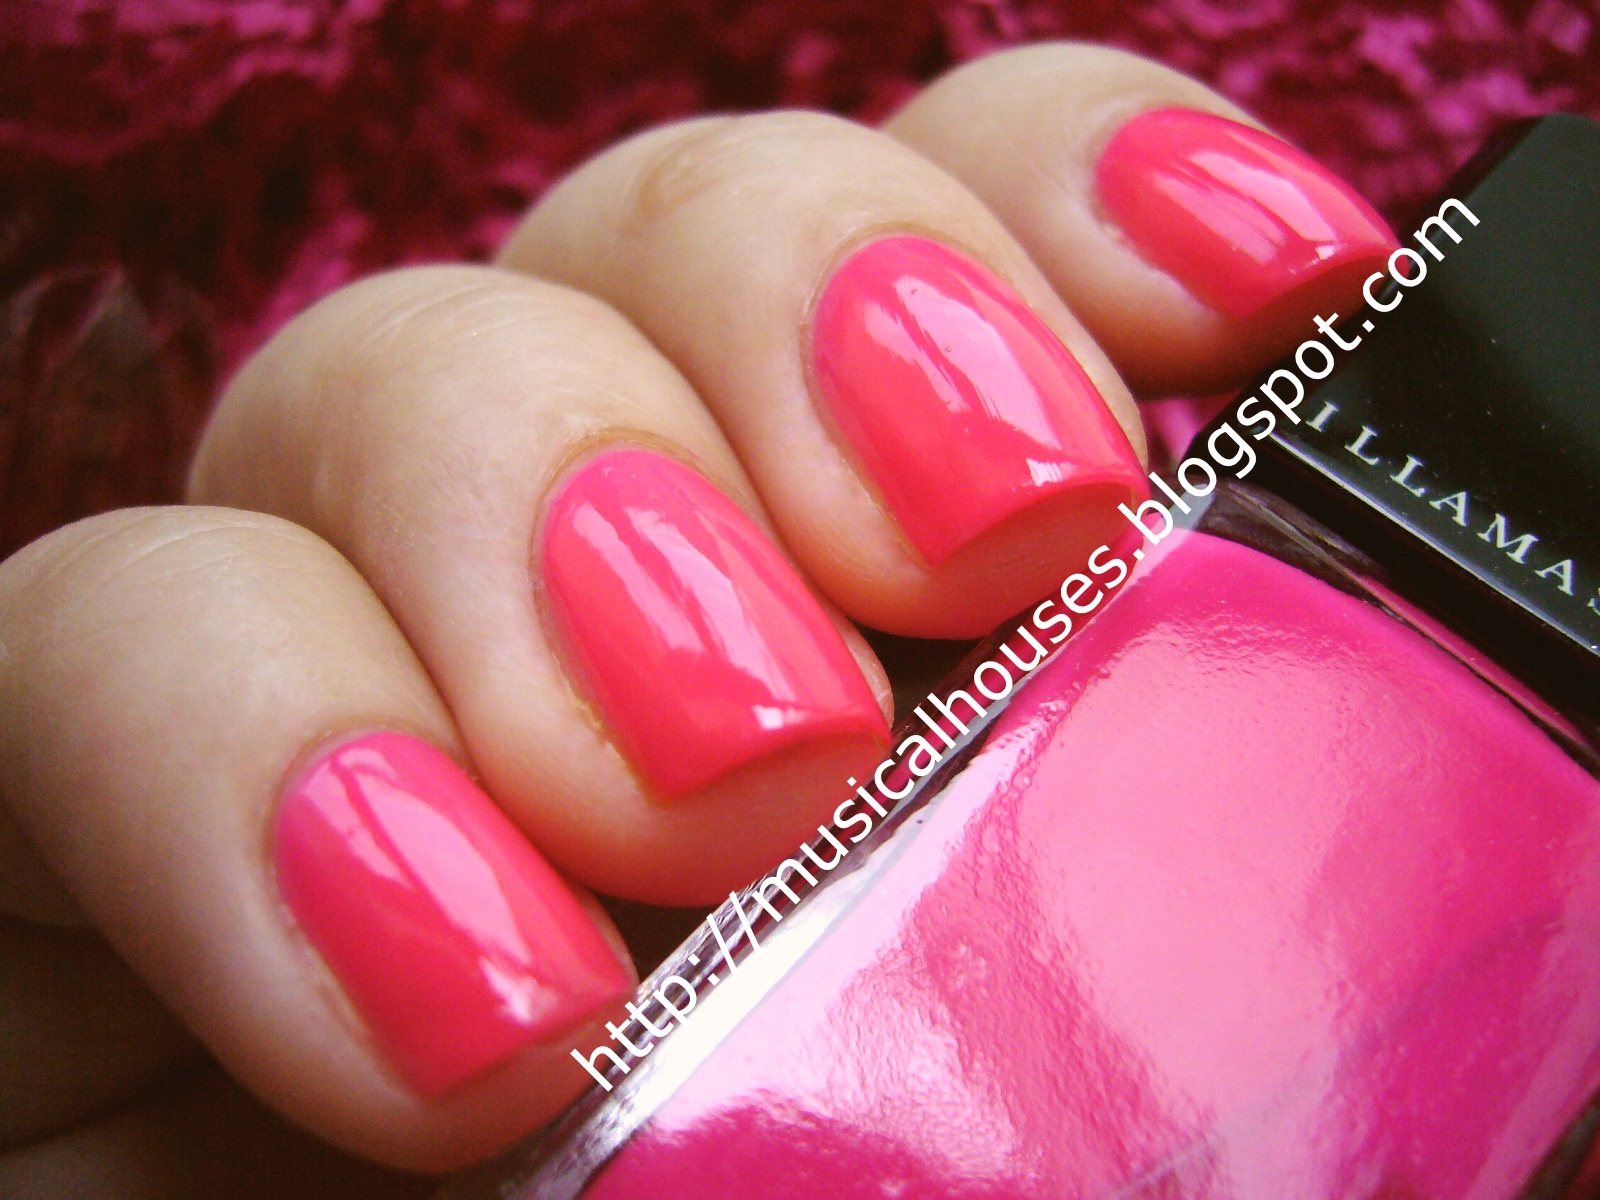 illamasqua collide: neon hot pink nails for summer! - of faces and